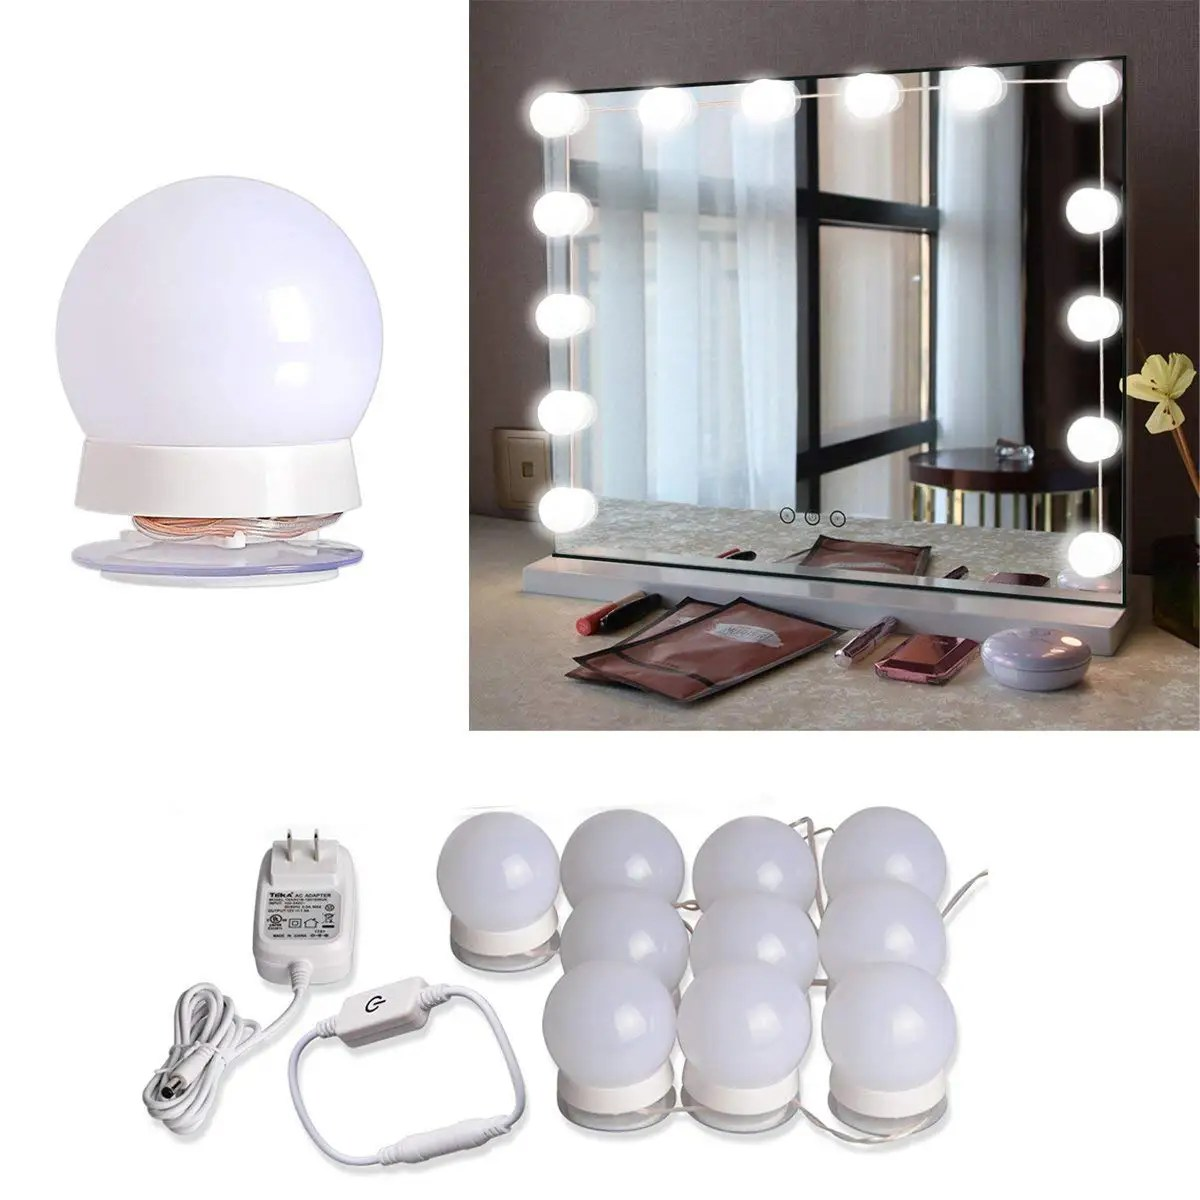 LED Vanity Mirror Light Kit with 10 Dimmable Light Bulbs